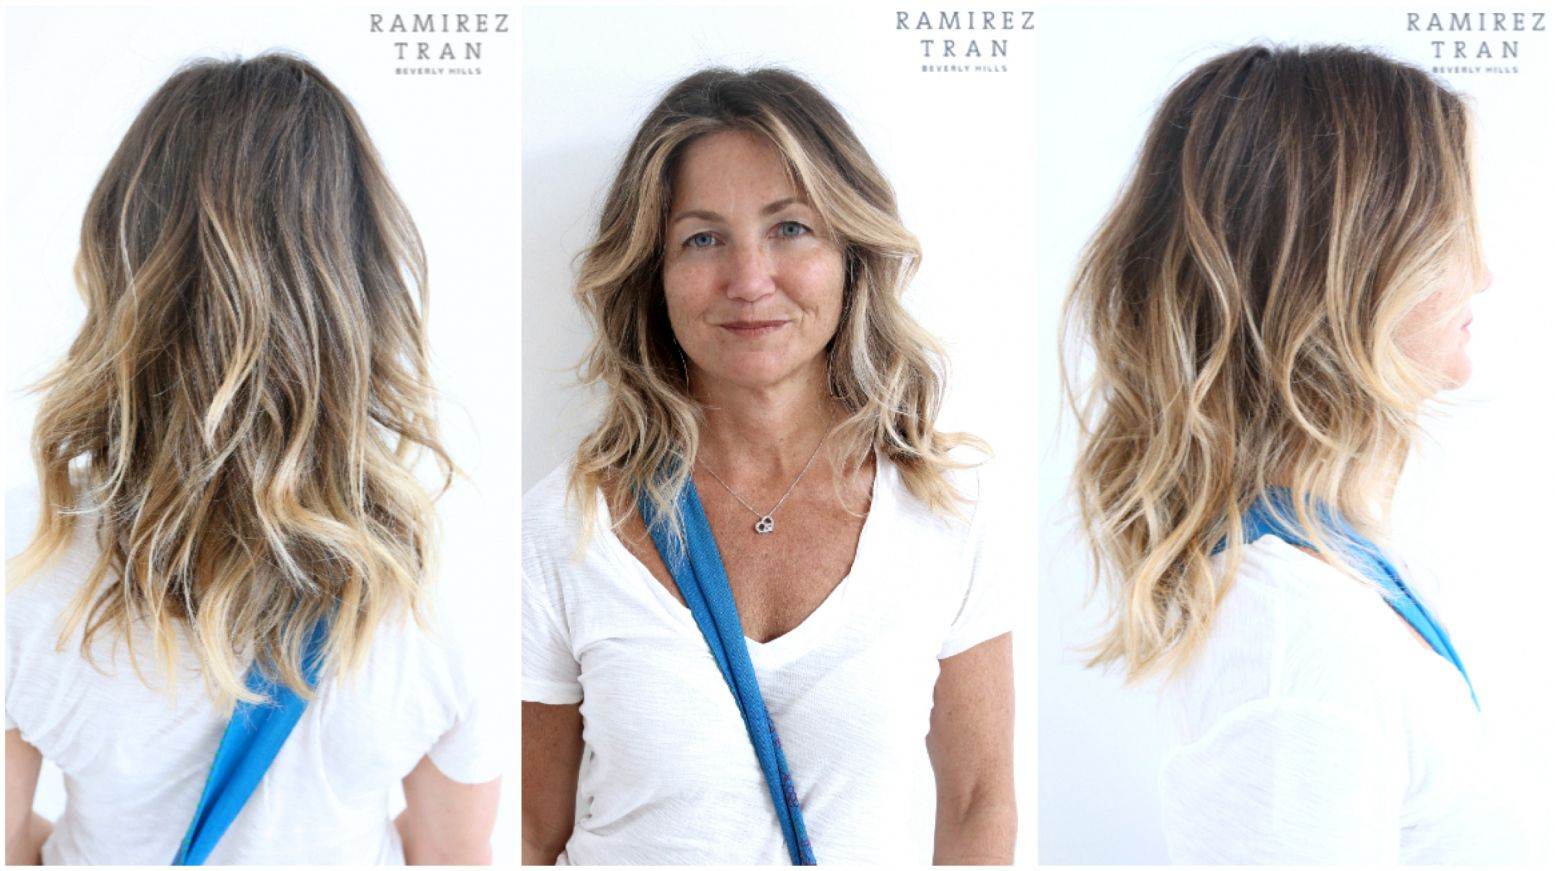 Shades Of Color Hair Salon - Best Dark Blonde Hair Color Home Check ...